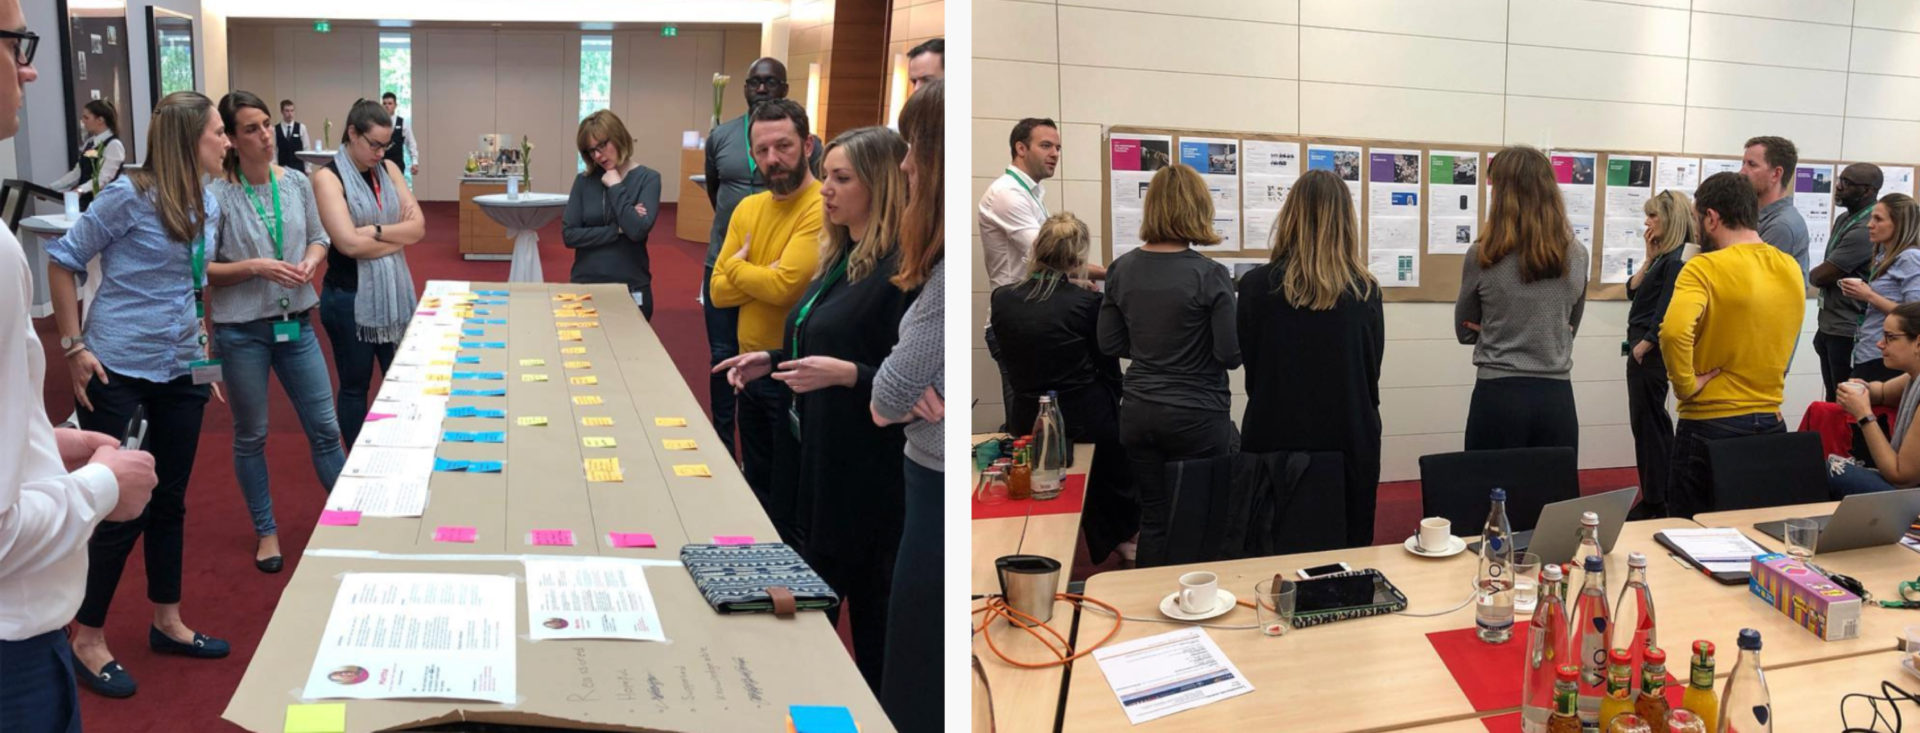 ELSE and the Boehringer Ingelheim team mapping out the steps for a patient centered service